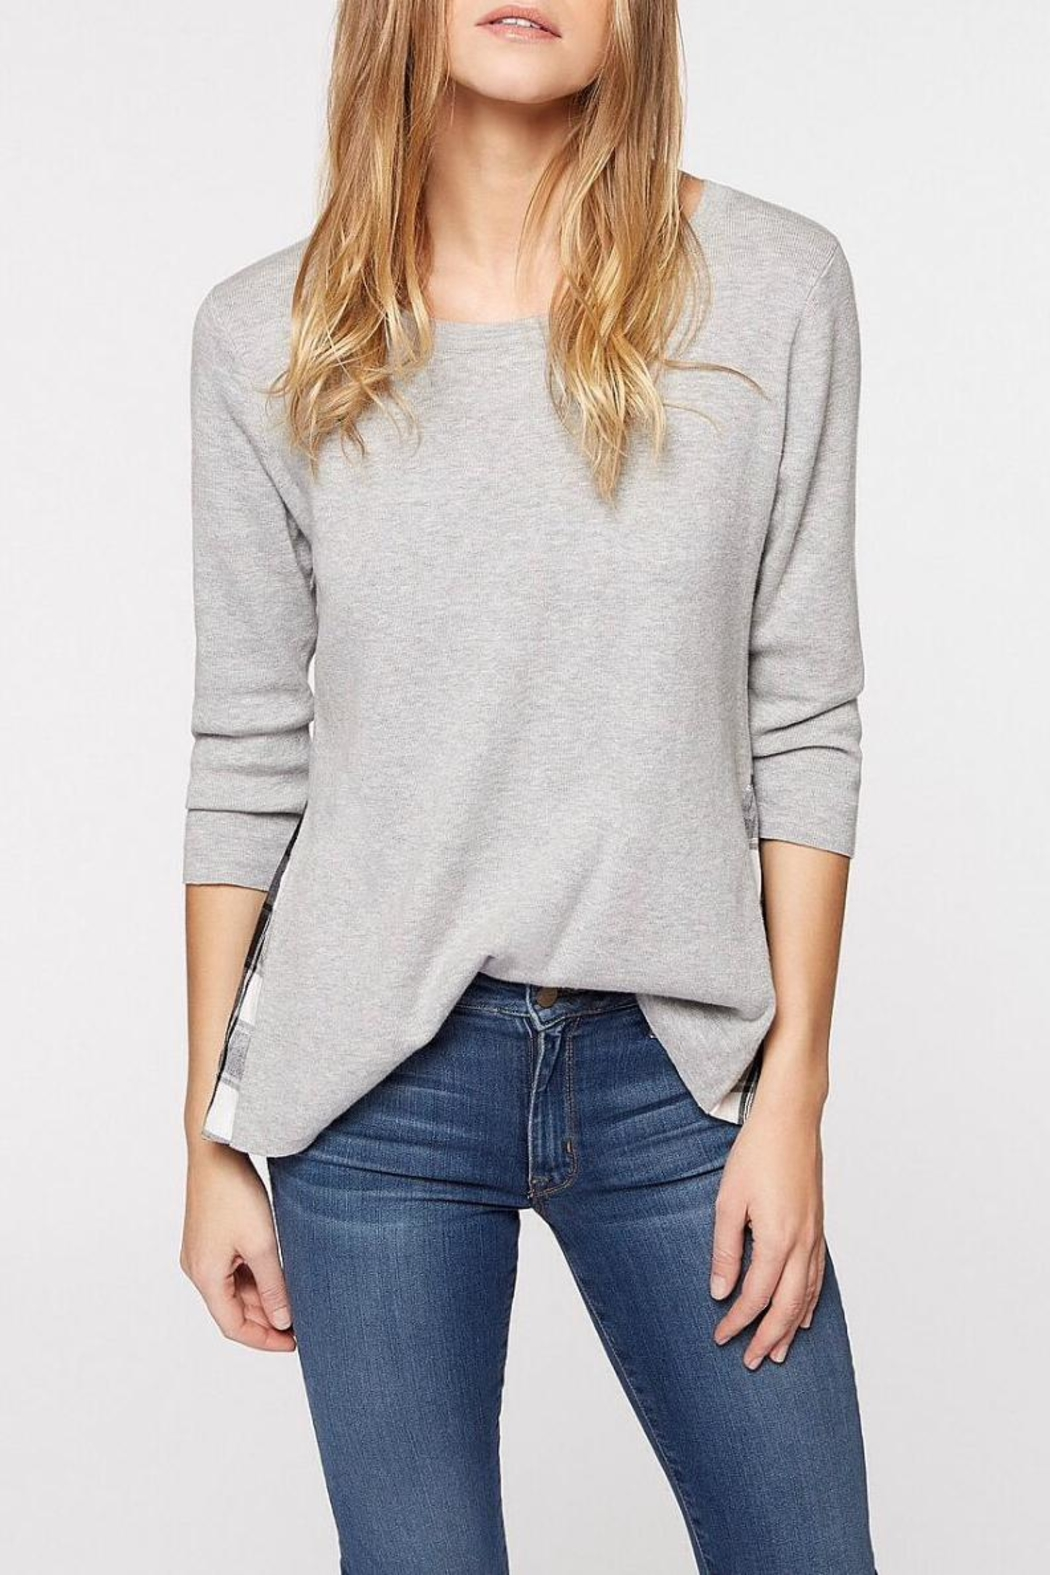 Sanctuary Grey Mix Sweater - Front Cropped Image